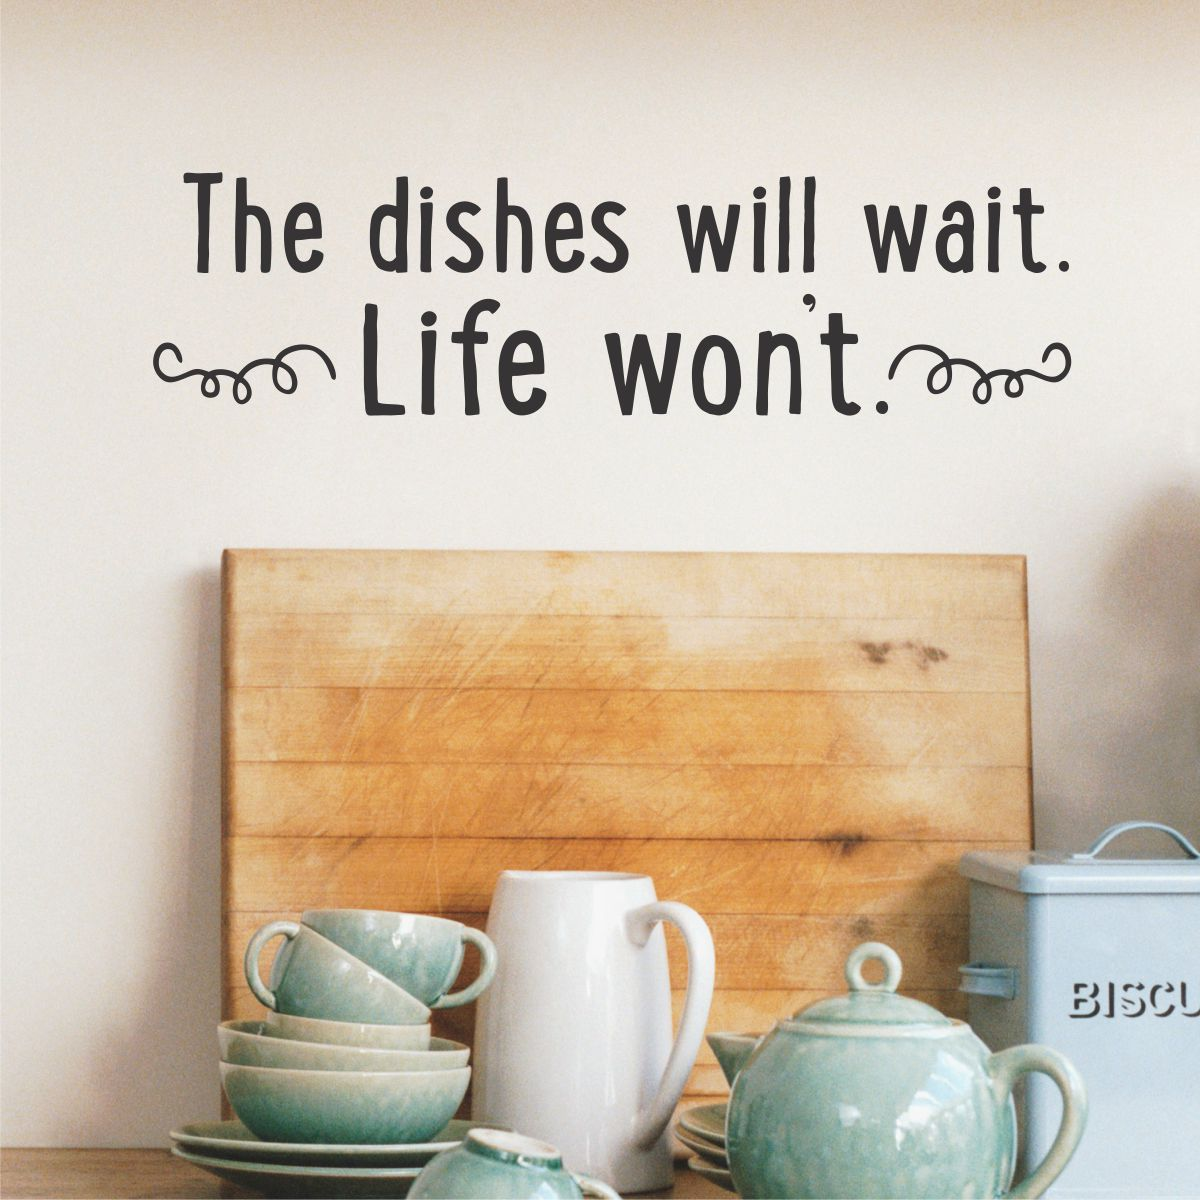 Dishes will wait wall quotes decal for Kitchen cabinets quotation